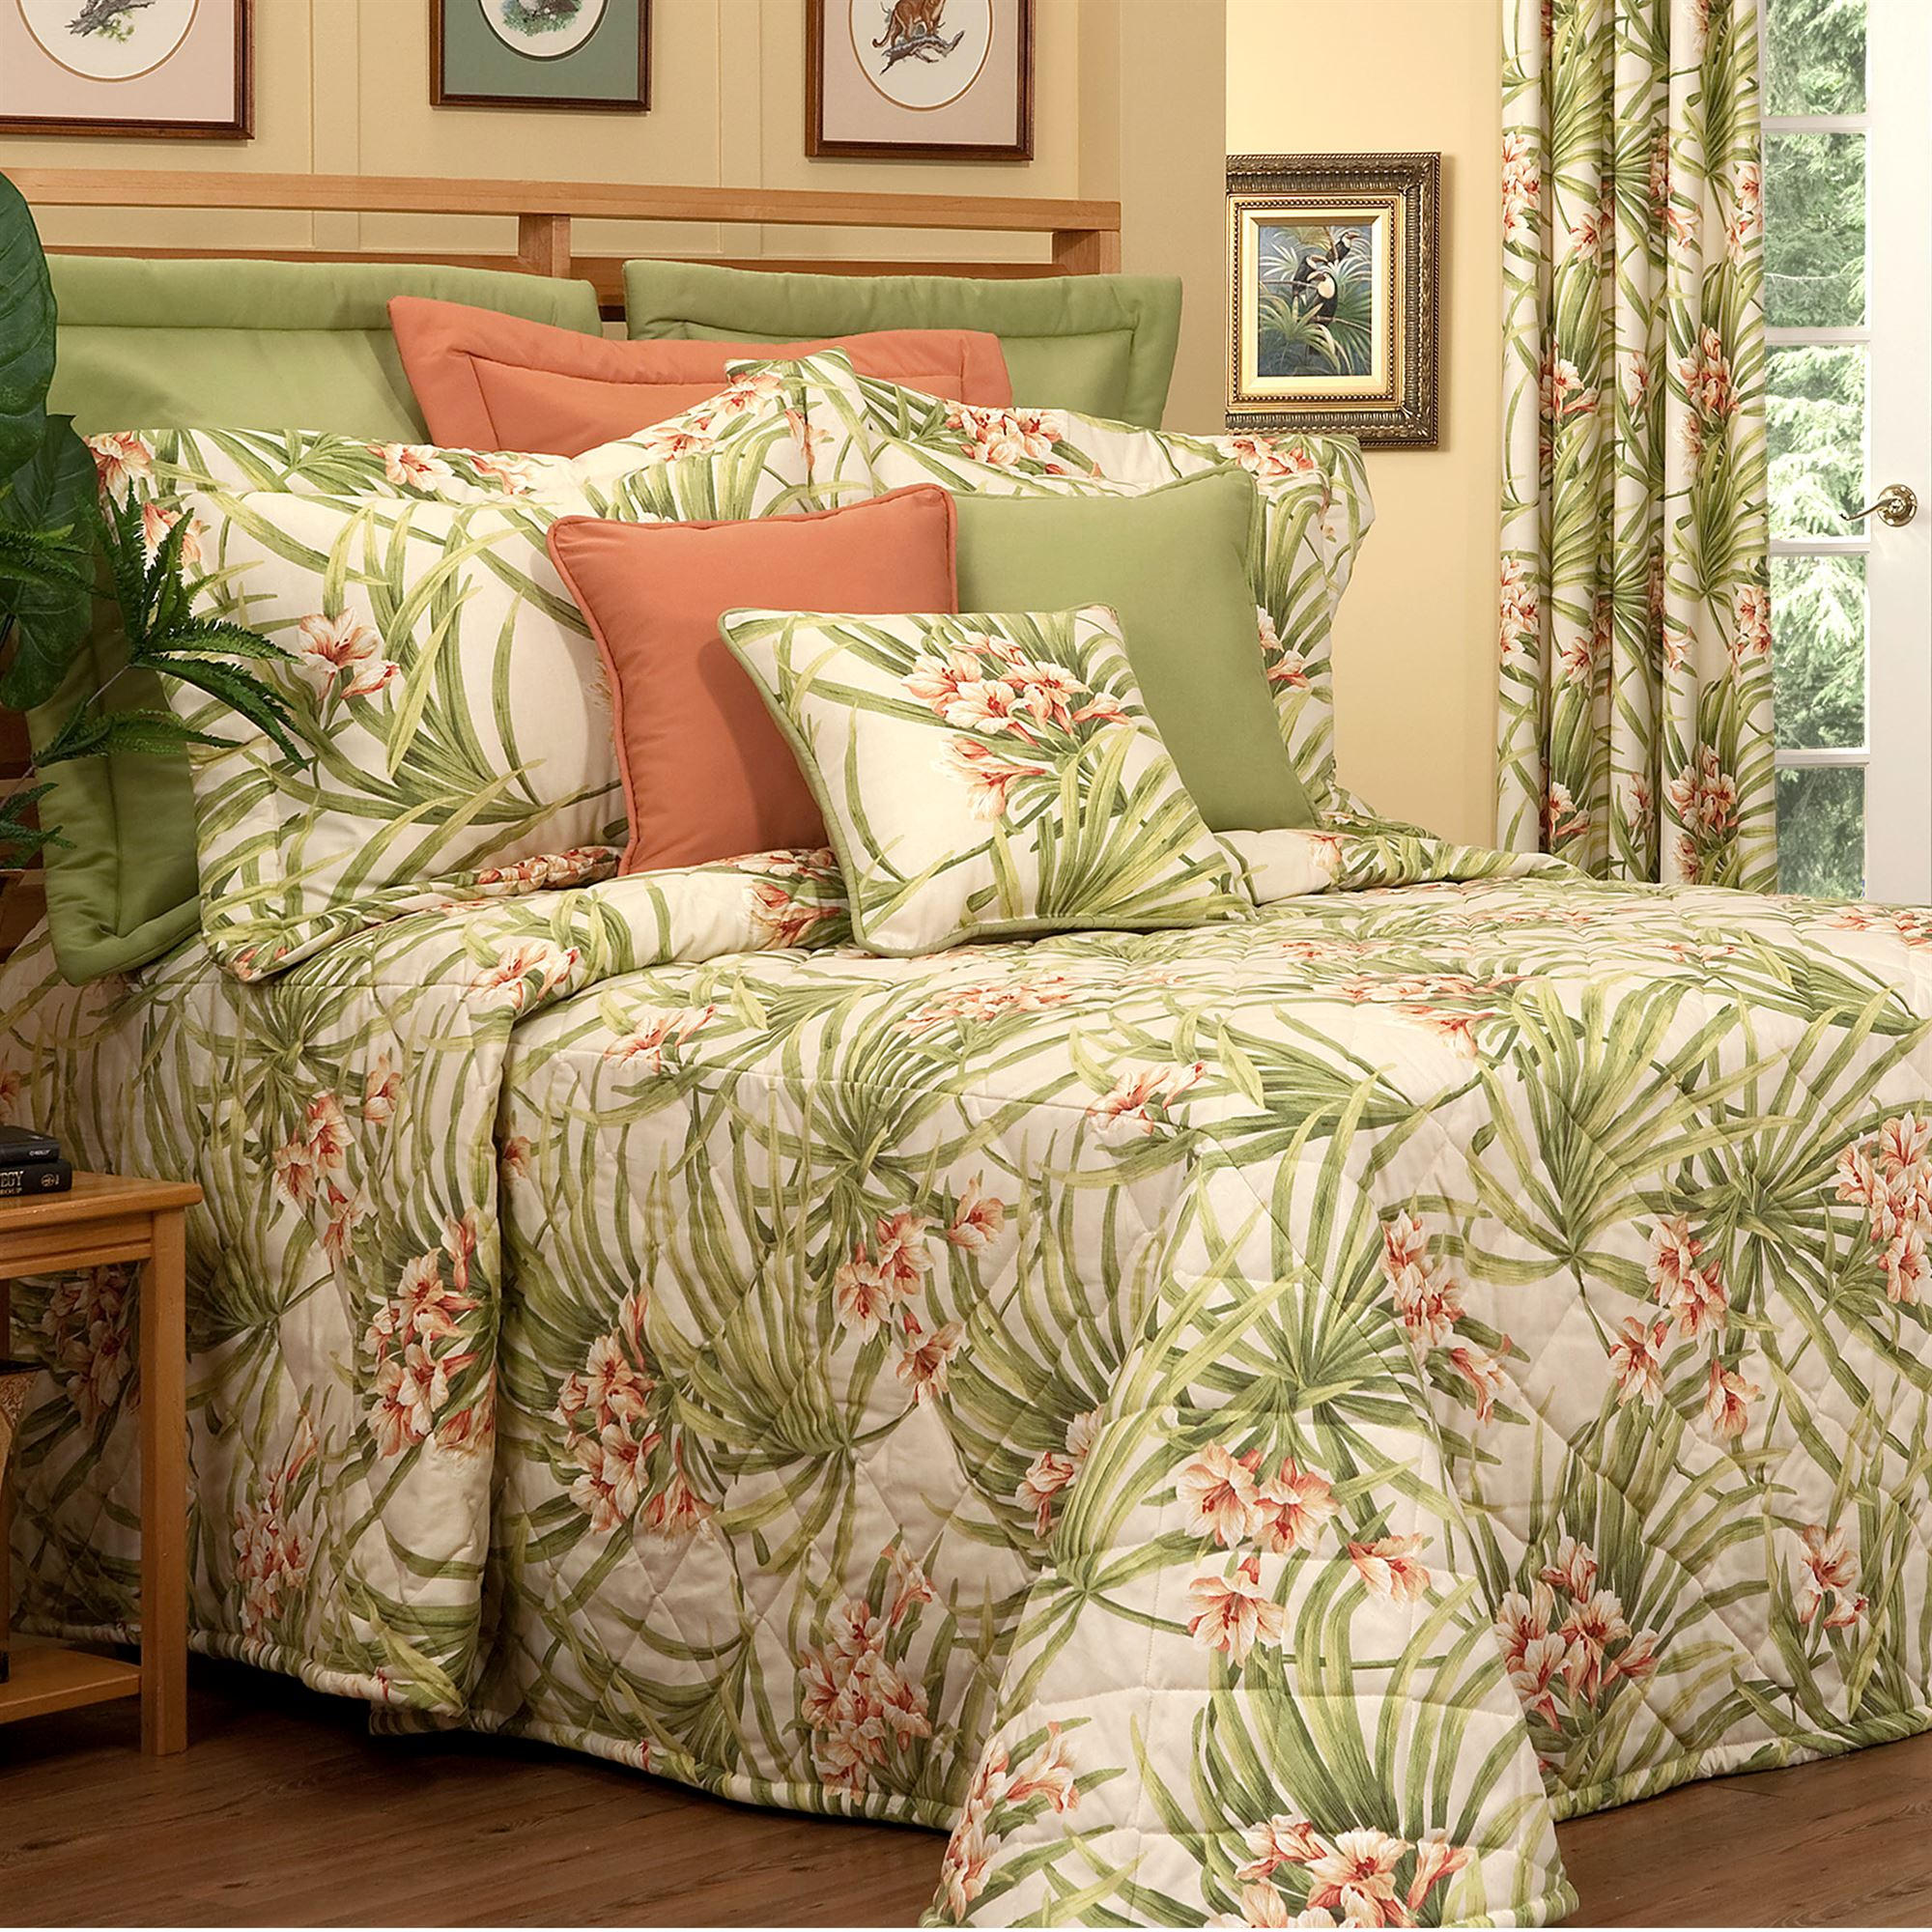 Katia Quilted Tropical Bedspread Bedding